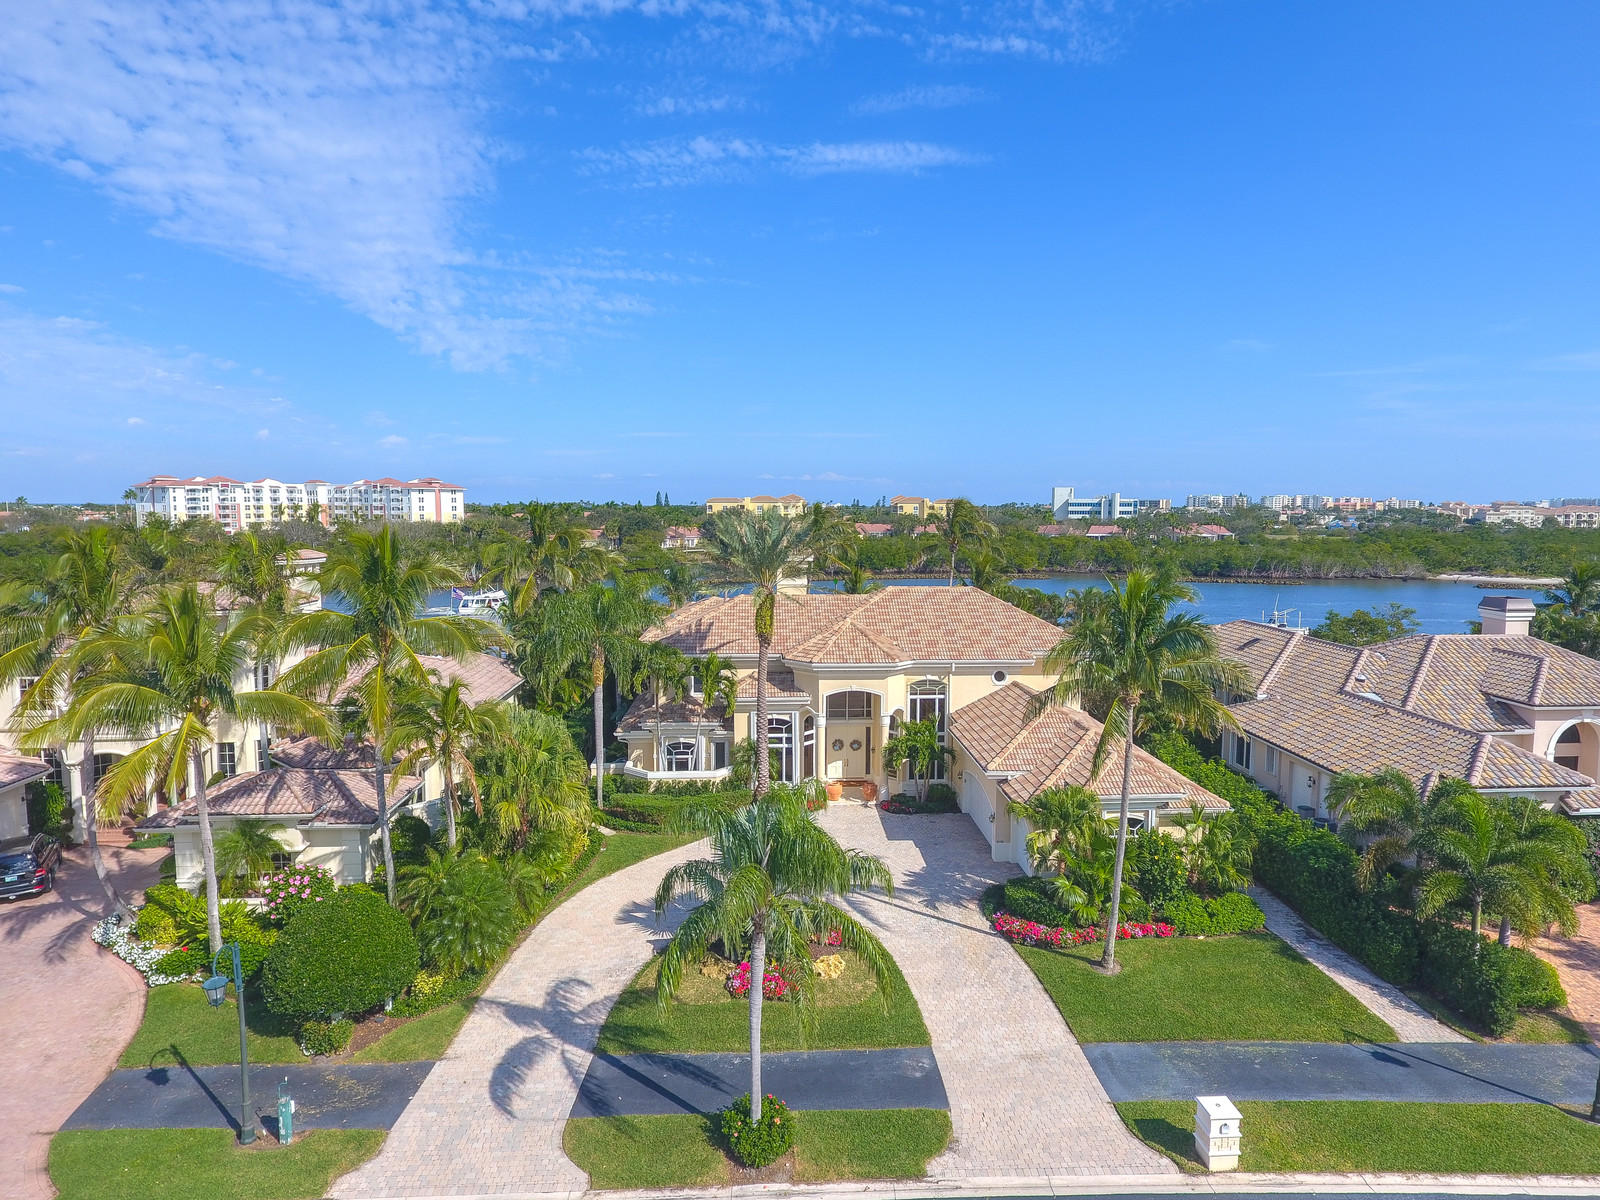 New Home for sale at 3156 Casseekey Island Road in Jupiter